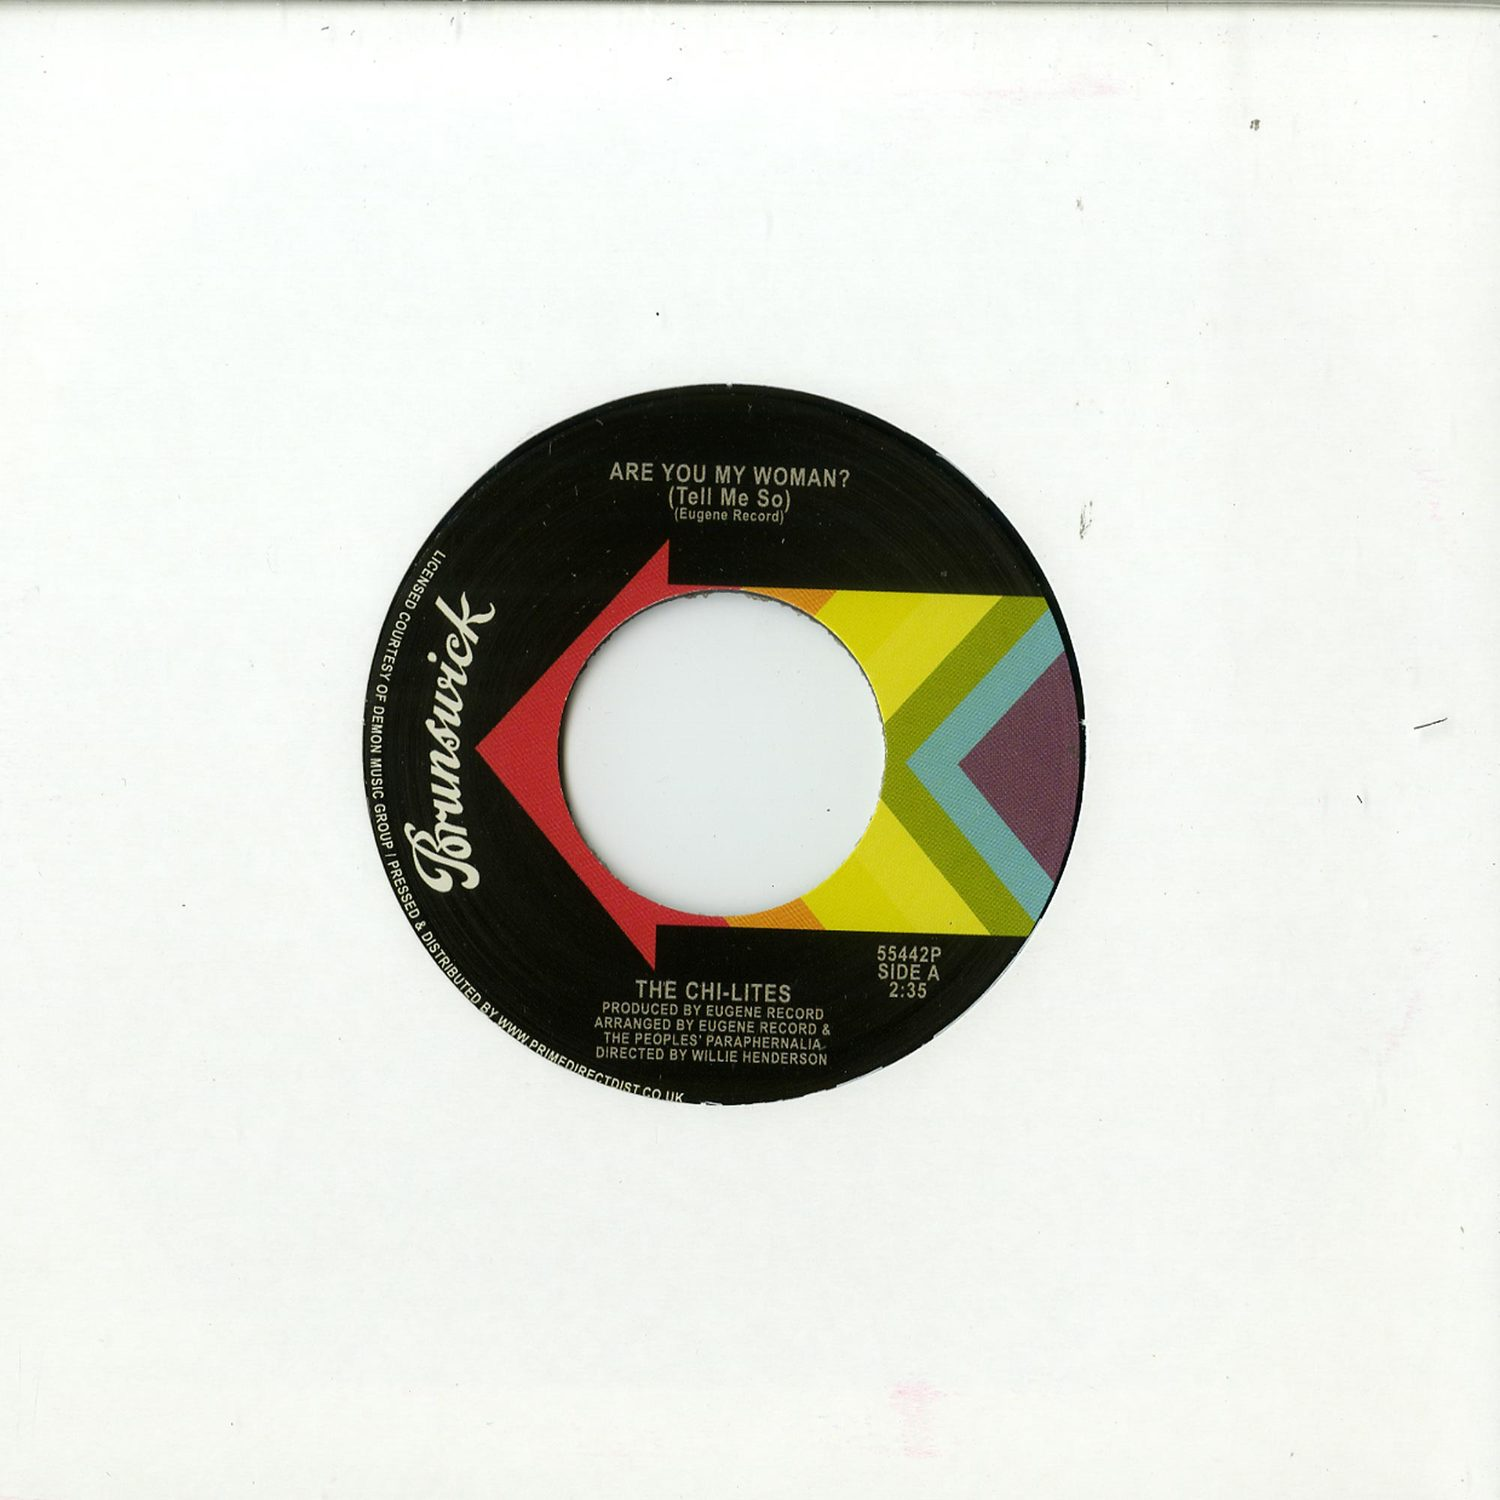 The Chi-Lites - ARE YOU MY WOMAN